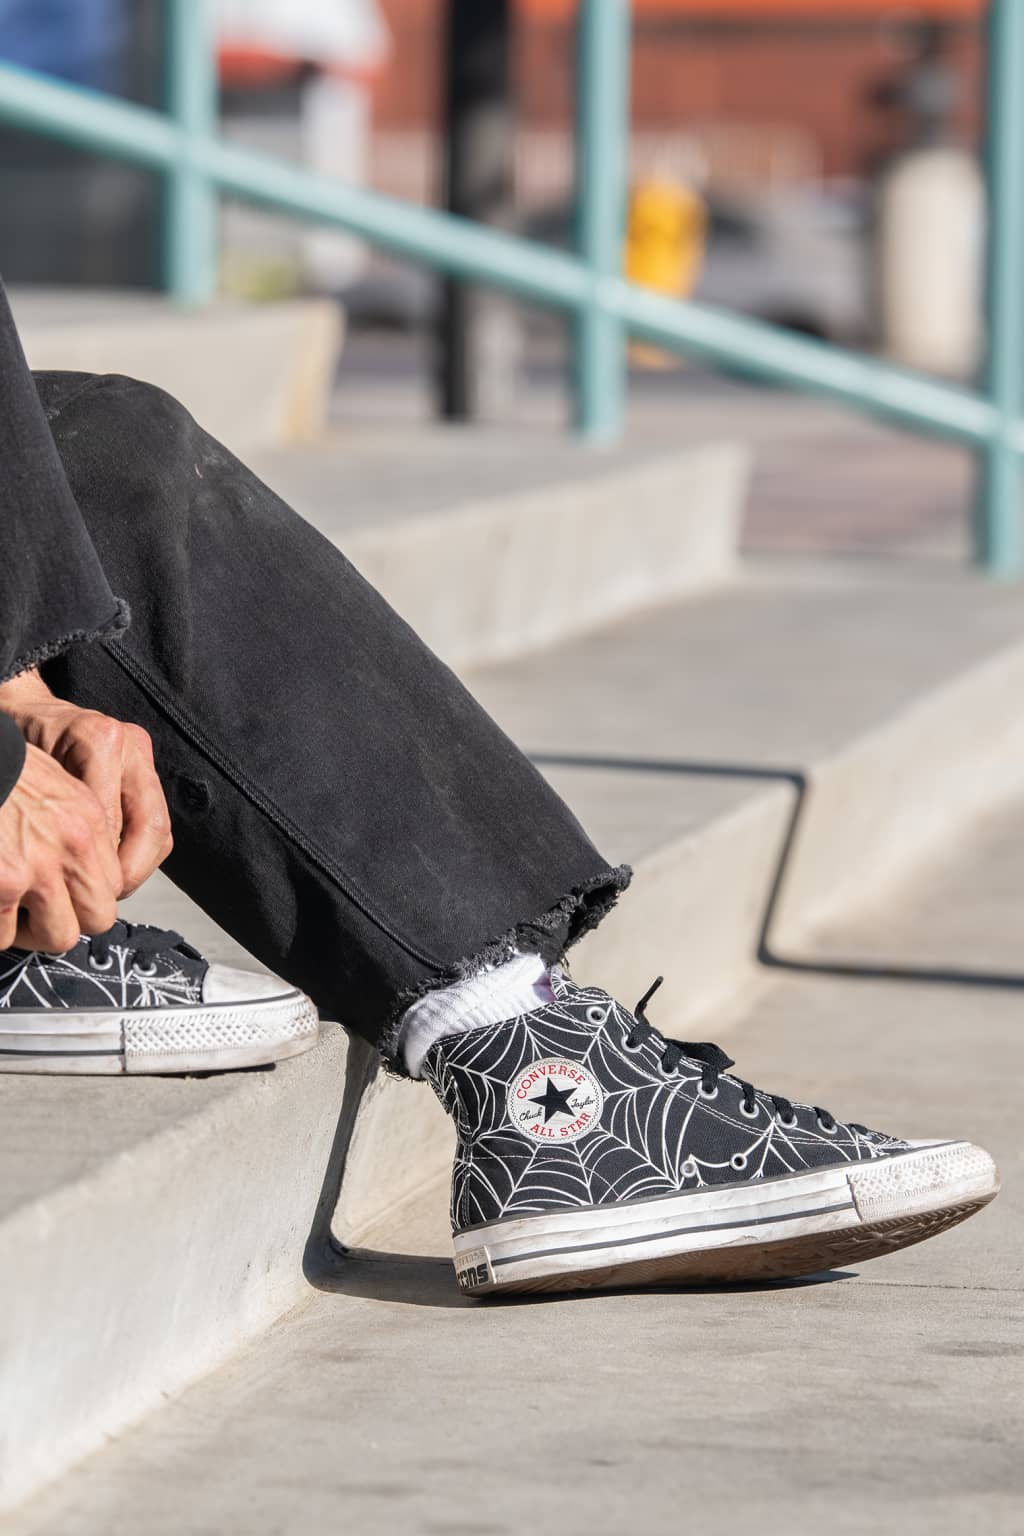 Converse CONS: Latest Arrivals